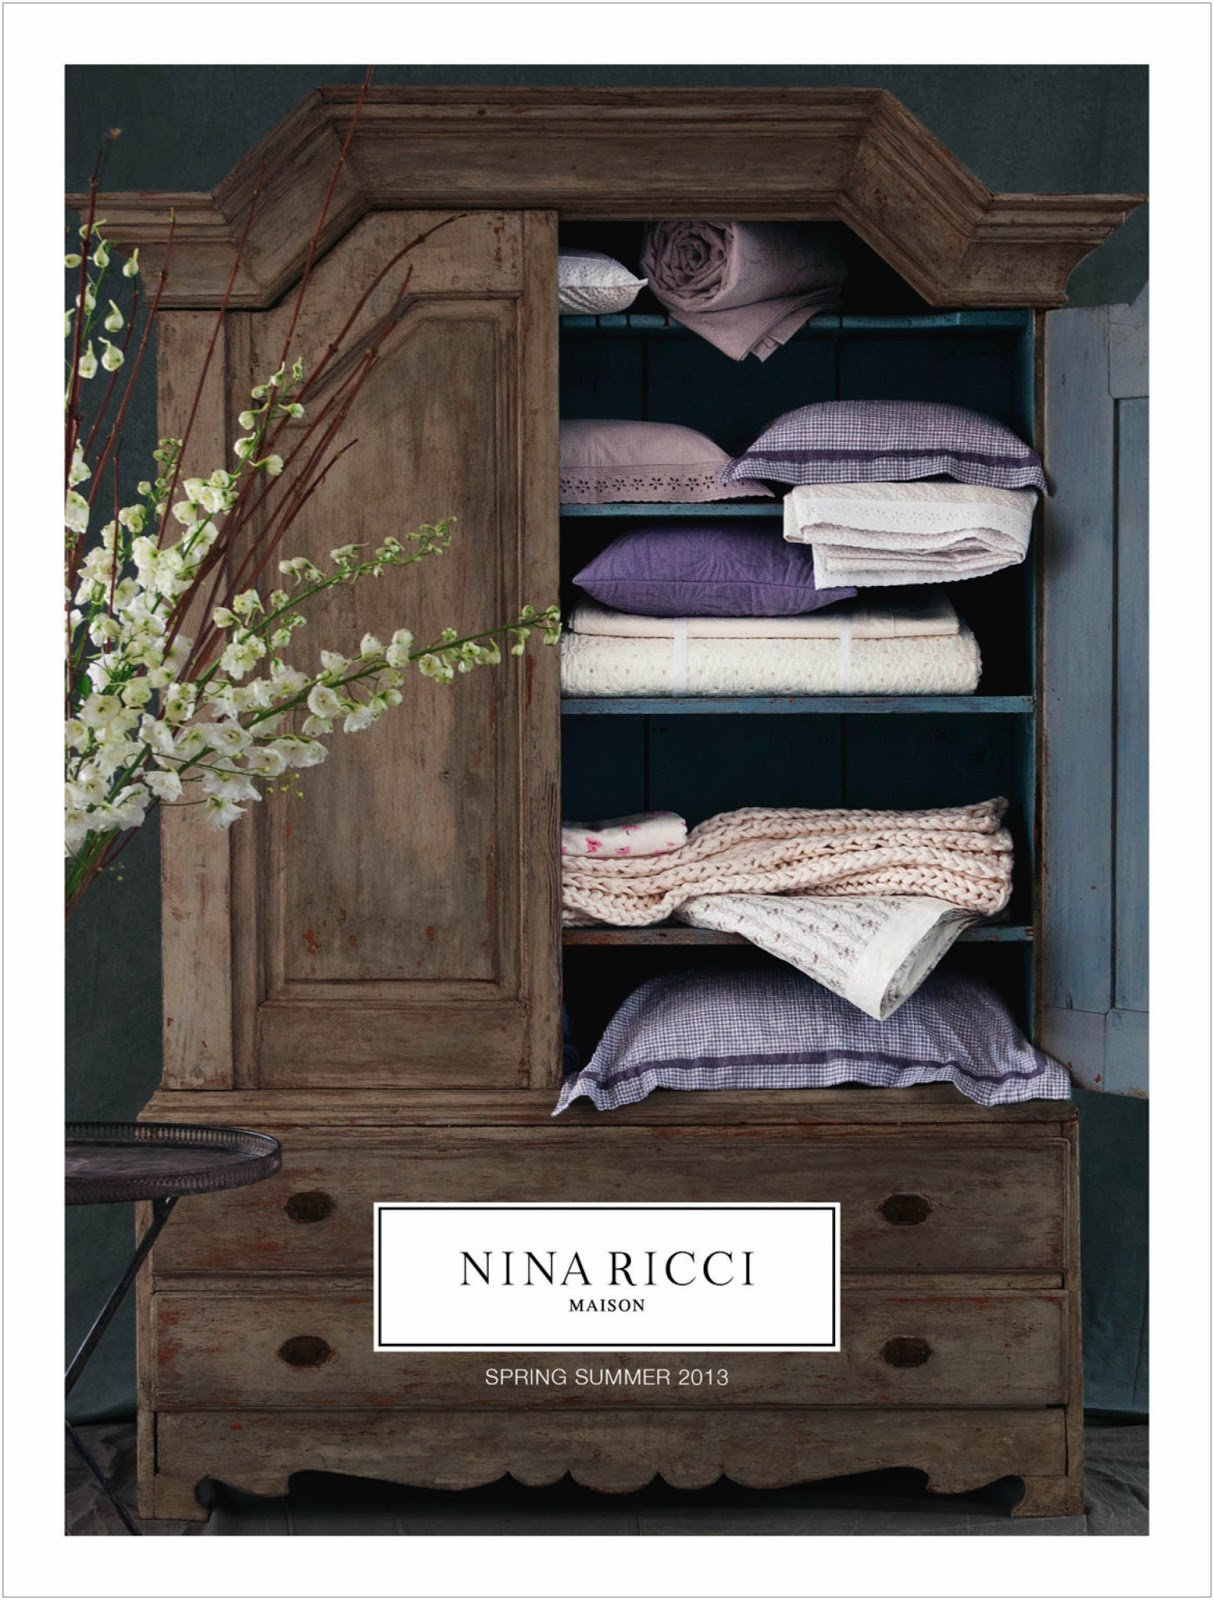 galerie des grands hommes nina ricci la premi re ligne de linge de maison d j aux grands hommes. Black Bedroom Furniture Sets. Home Design Ideas